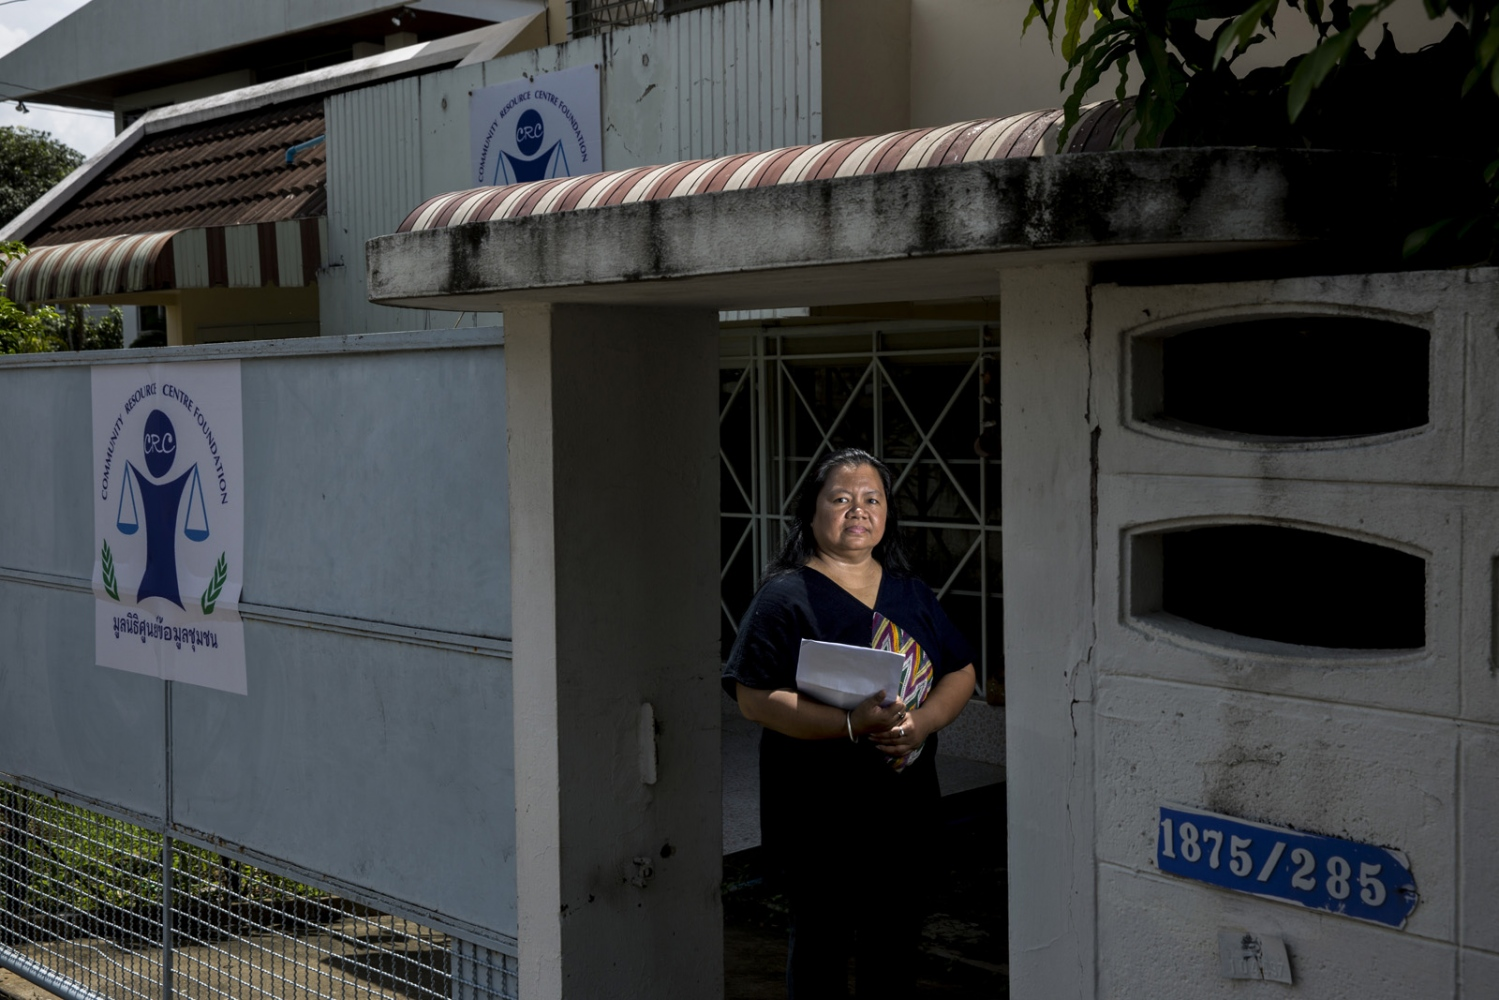 Lawyer Sor Rattanamanee Polkla in the doorway of the Community Resource Centre Foundation where she works. Her foundation assists communities around the country who face legal challenges often related to the environmental threats from companies. Bangkok, Thailand